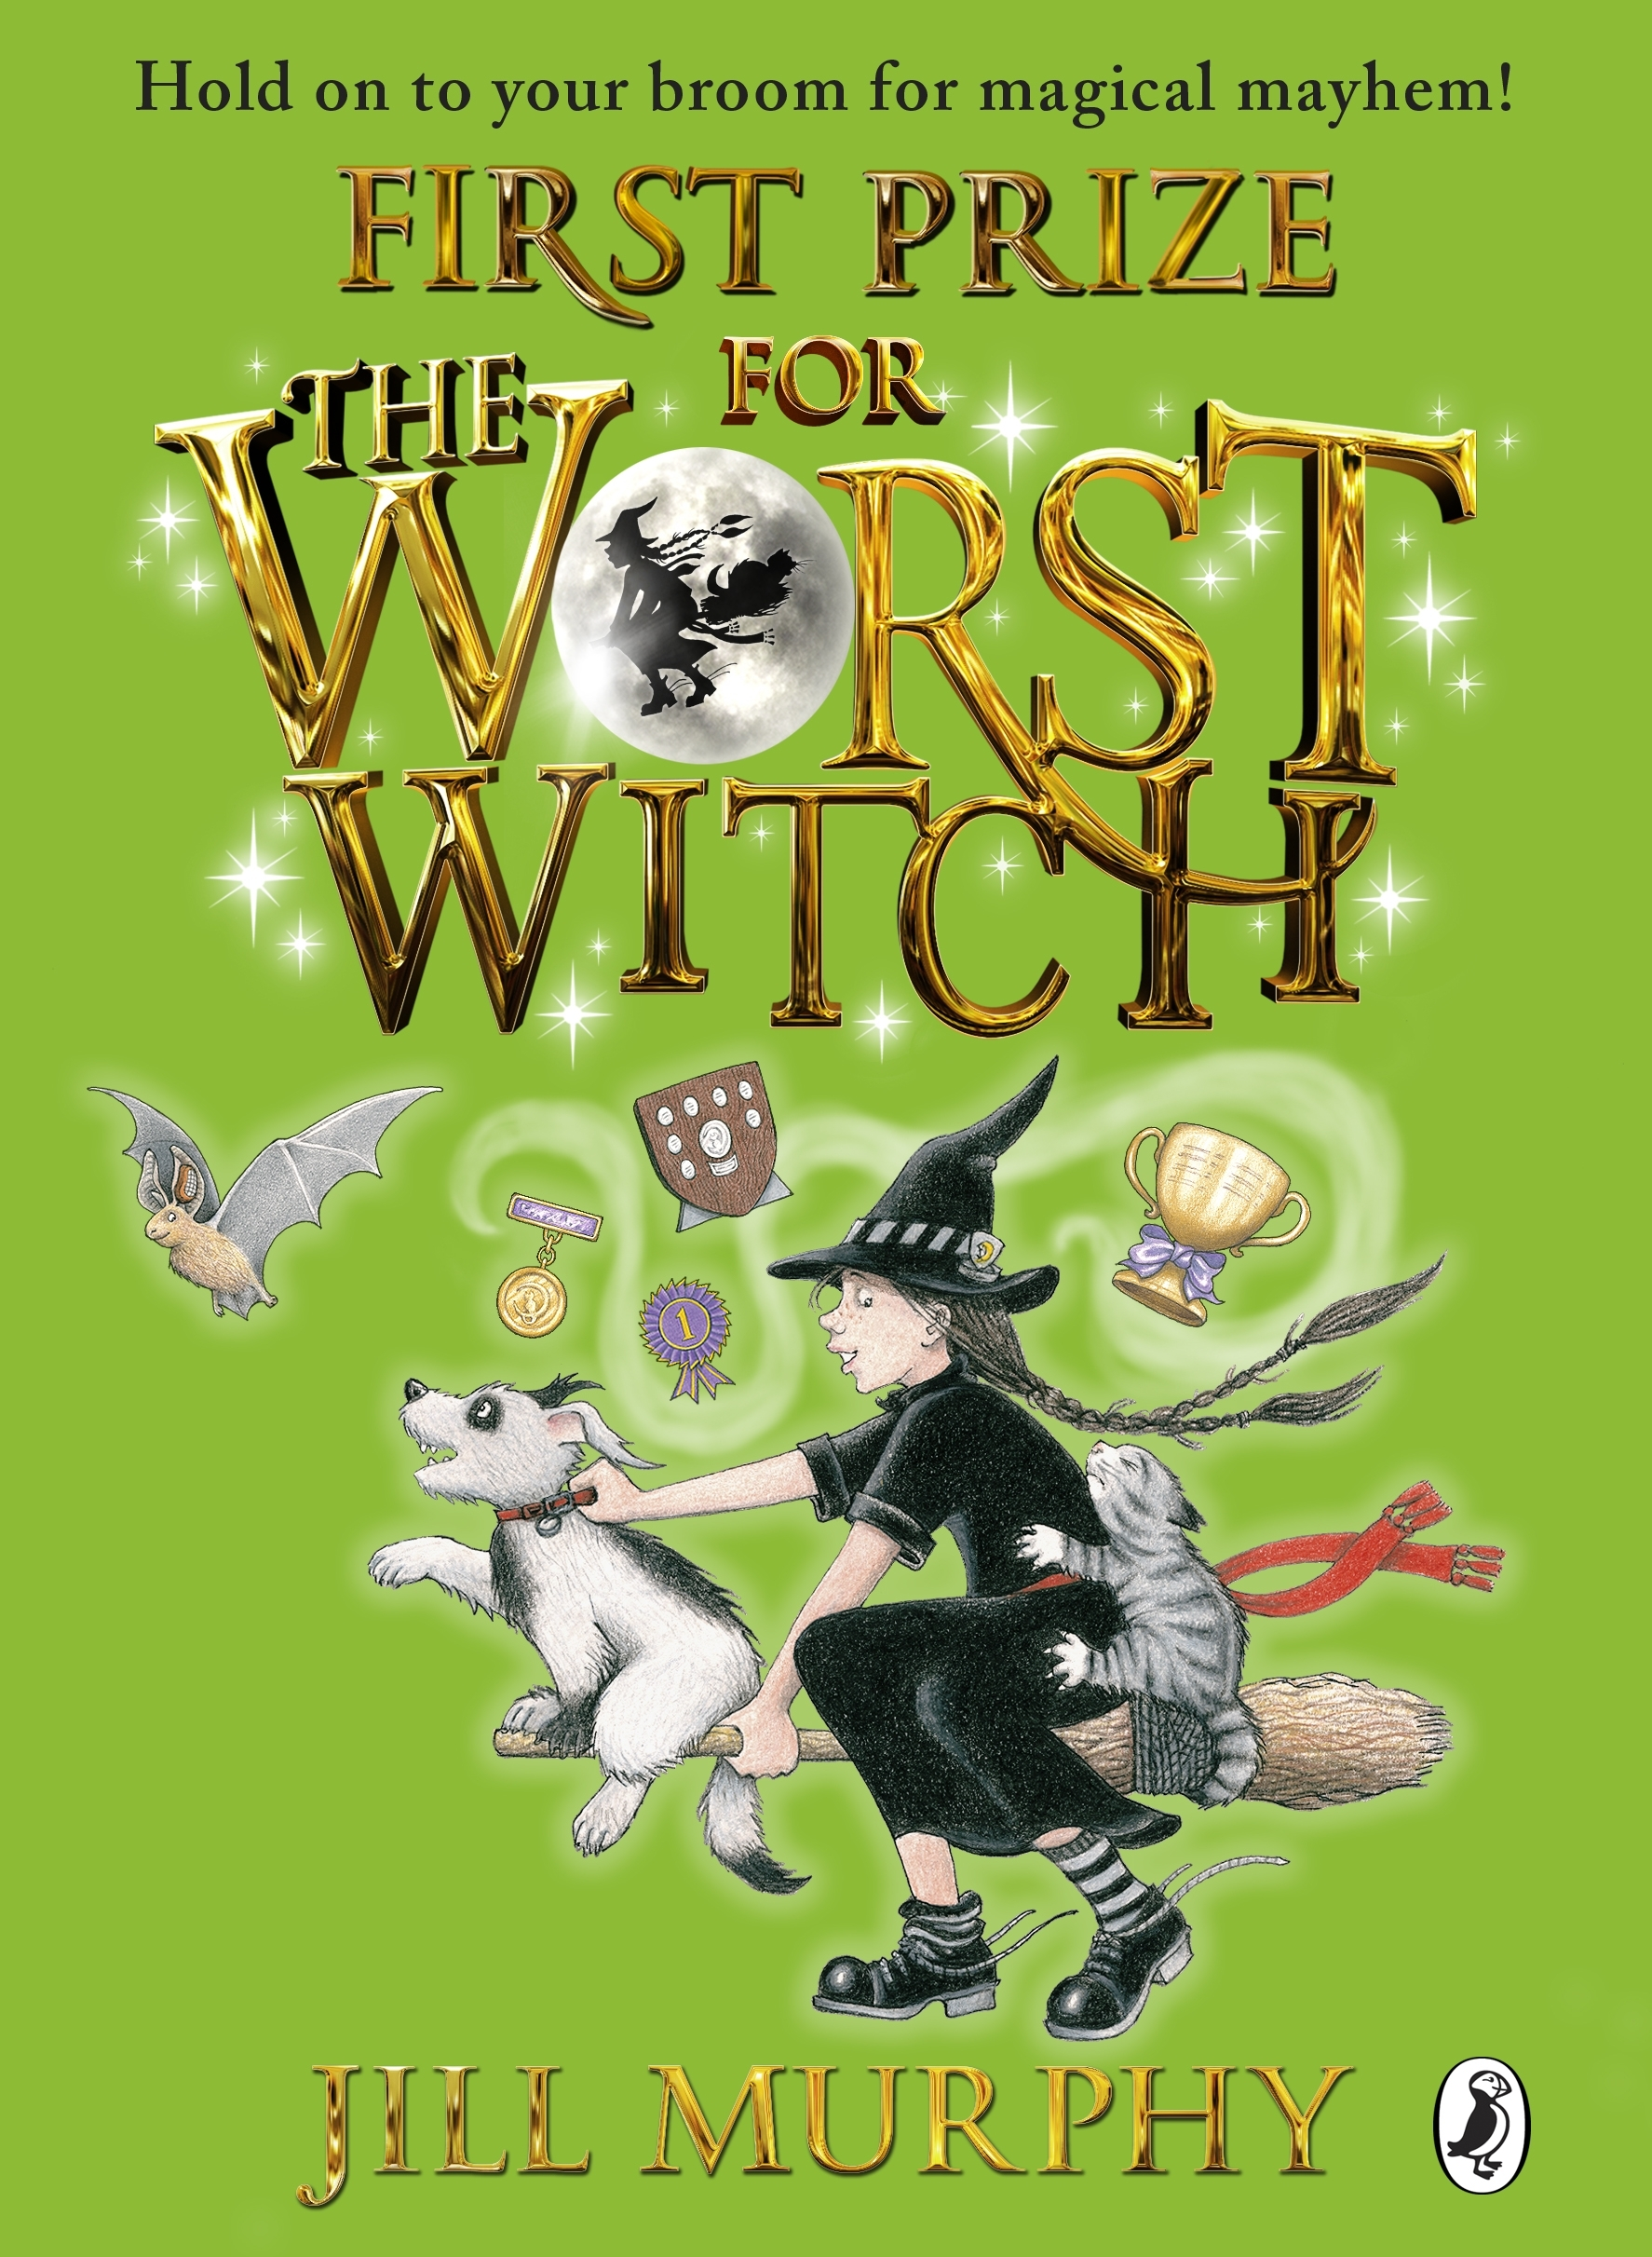 First Prize For The Worst WitchThe Worst Witch